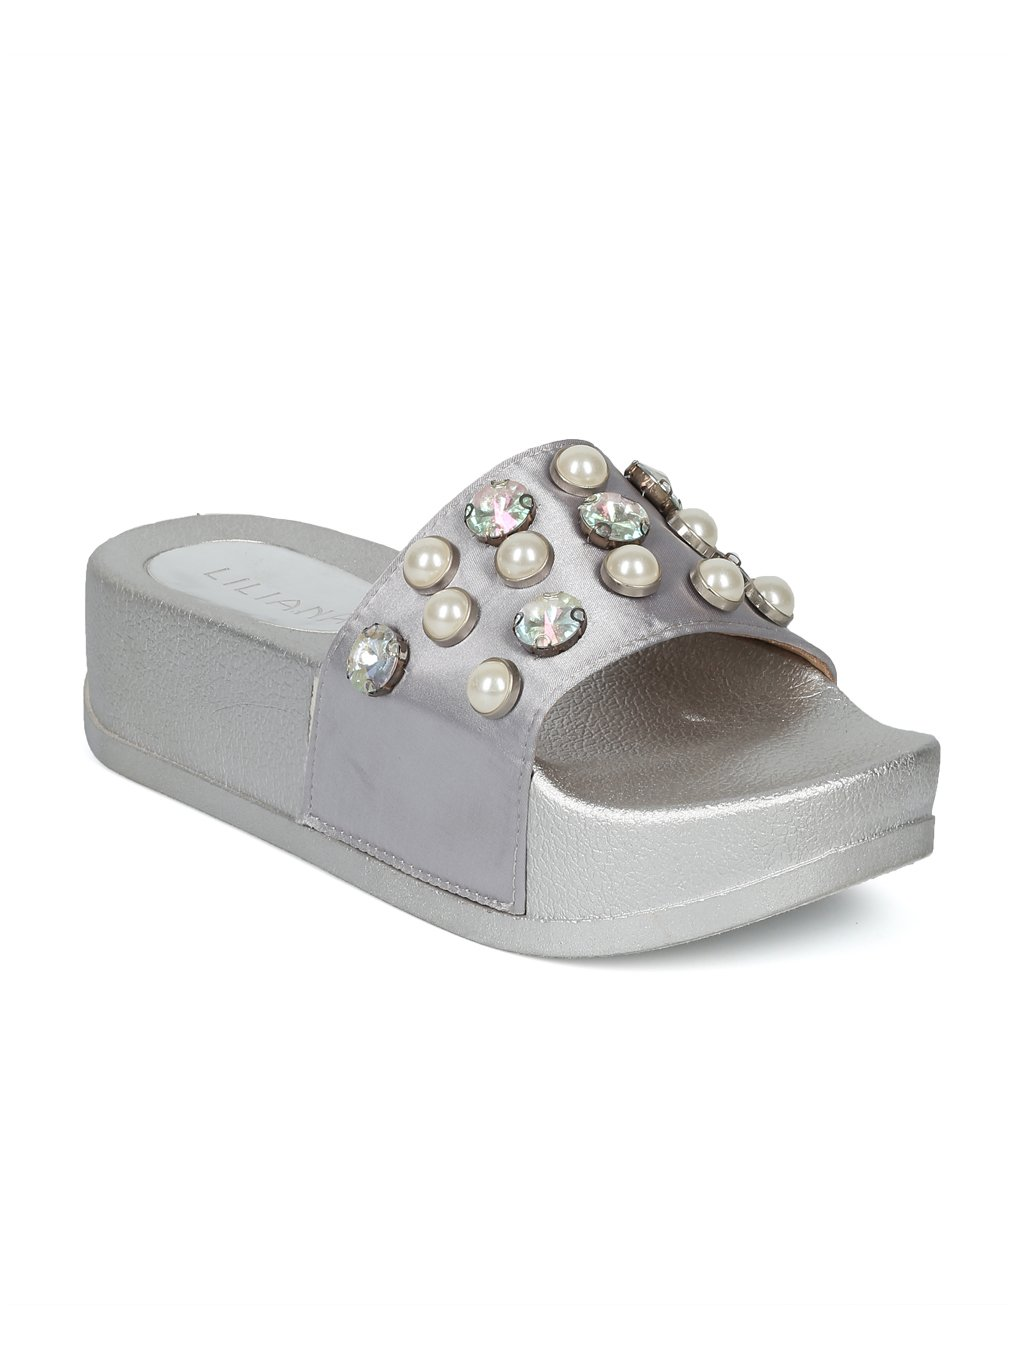 Alrisco Women Satin Faux Pearl and Gems Platform Footbed Slide HG26 B07999Y673 7.5 M US|Silver Satin